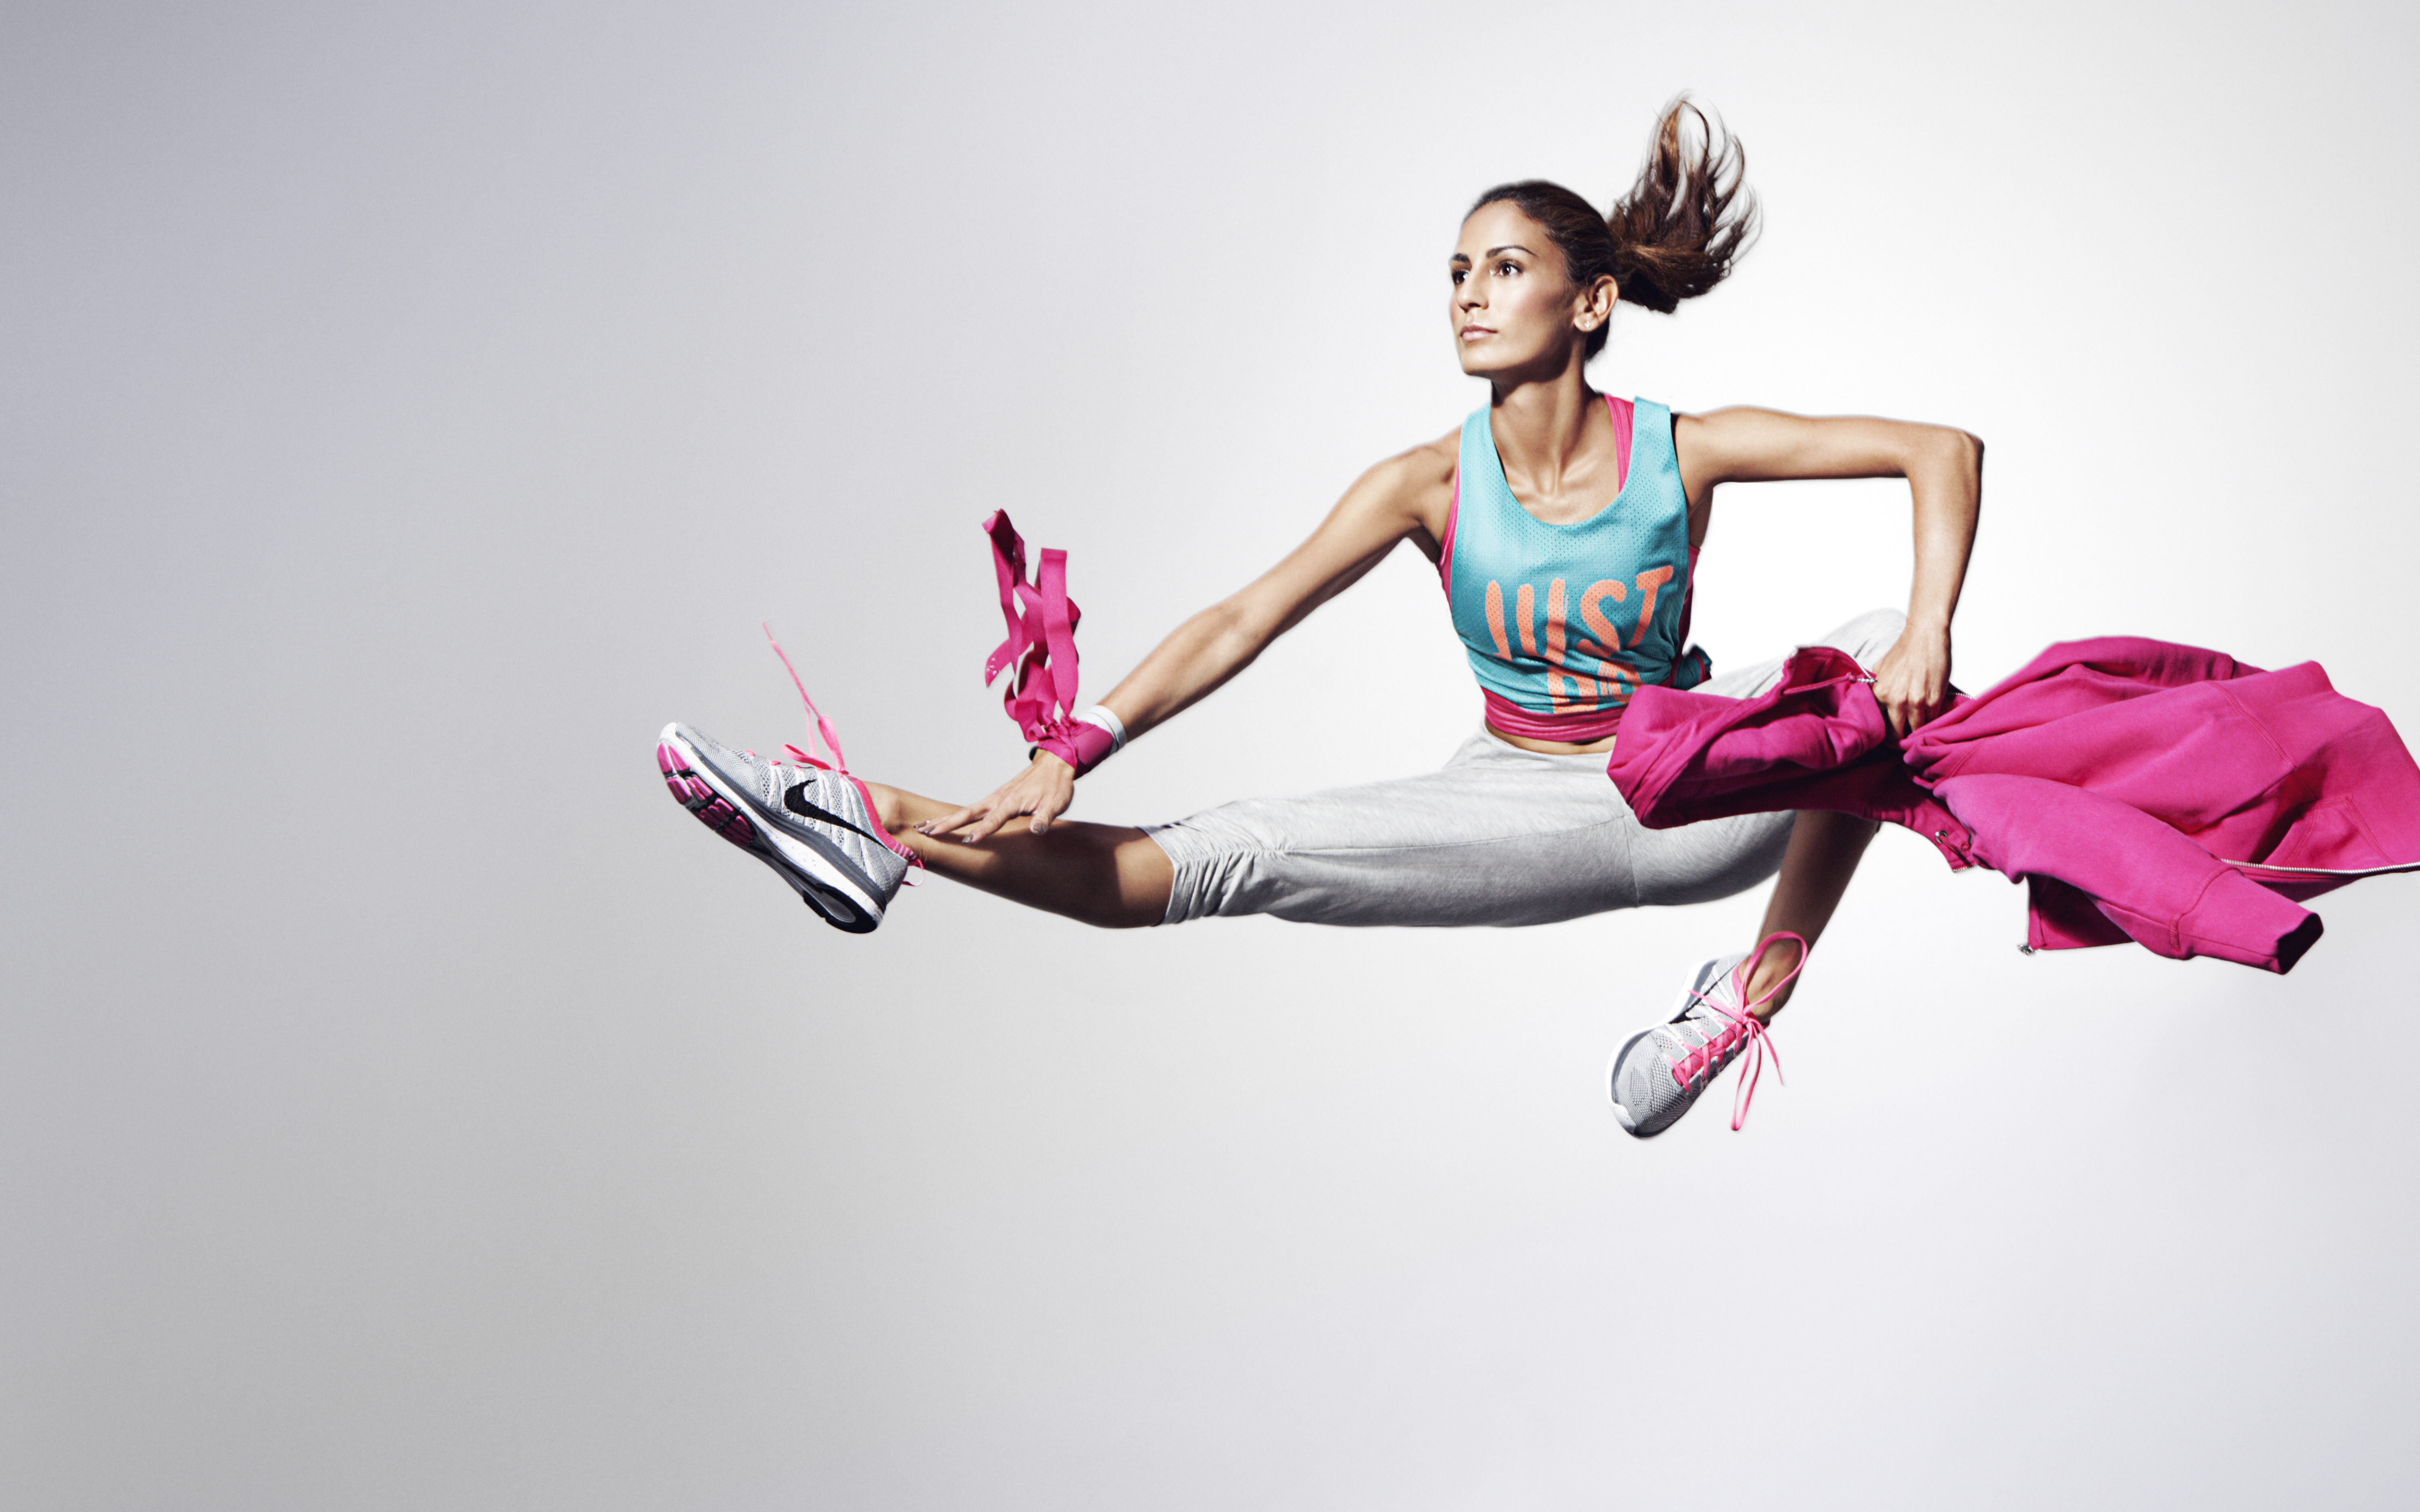 Nike Women\u0027s Spring/Summer 2013 Look Book